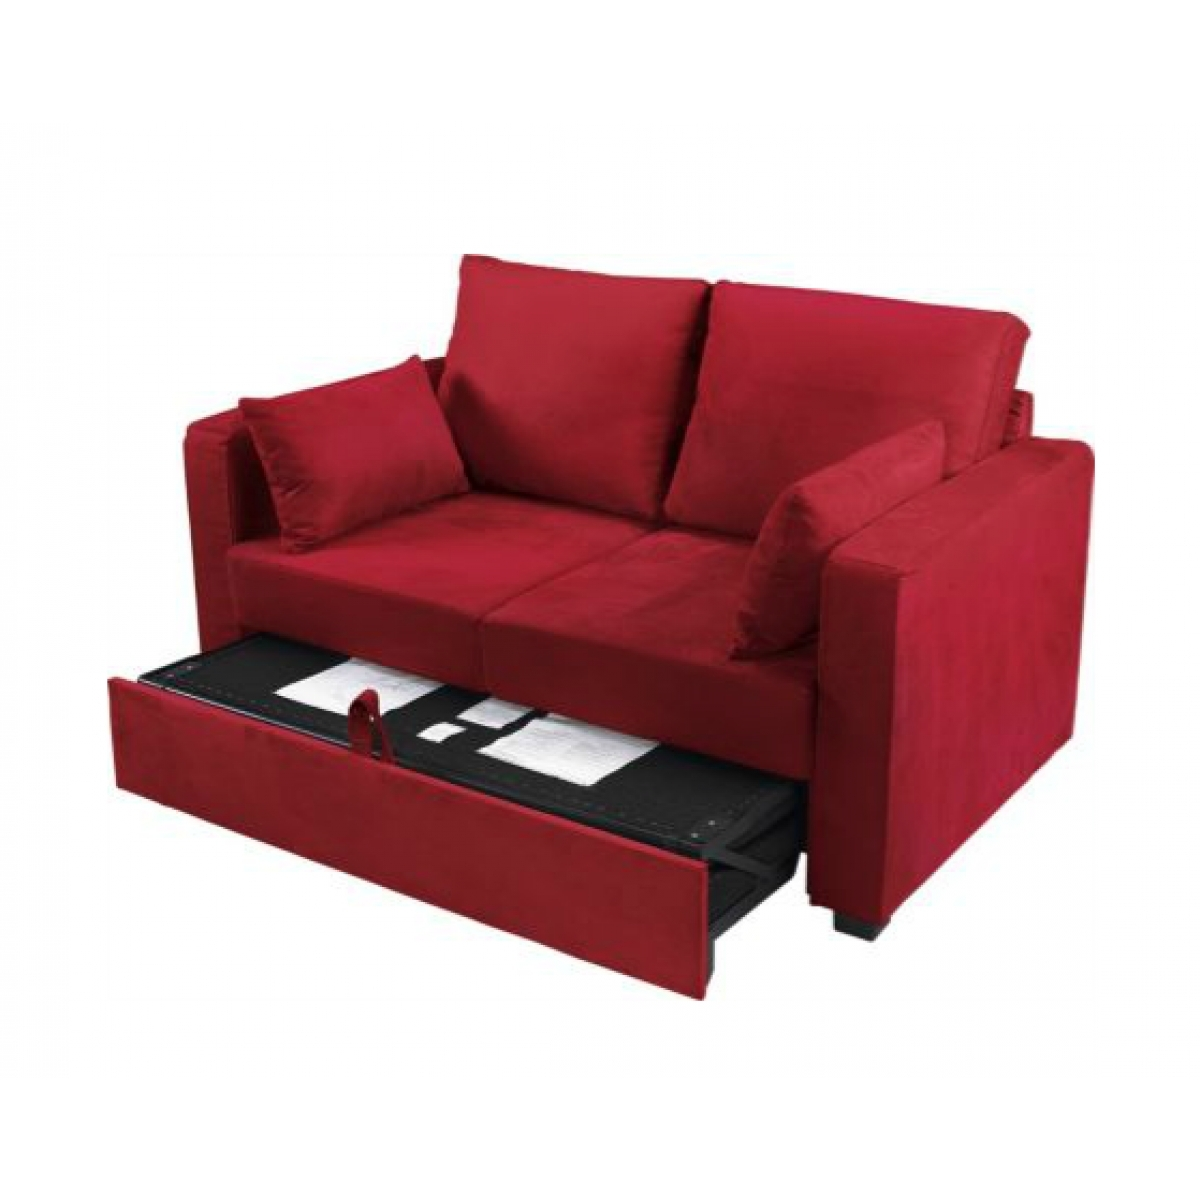 Stunning Apartment Size Sleeper Sofa Images – Liltigertoo For Apartment Size Sofas (View 6 of 10)